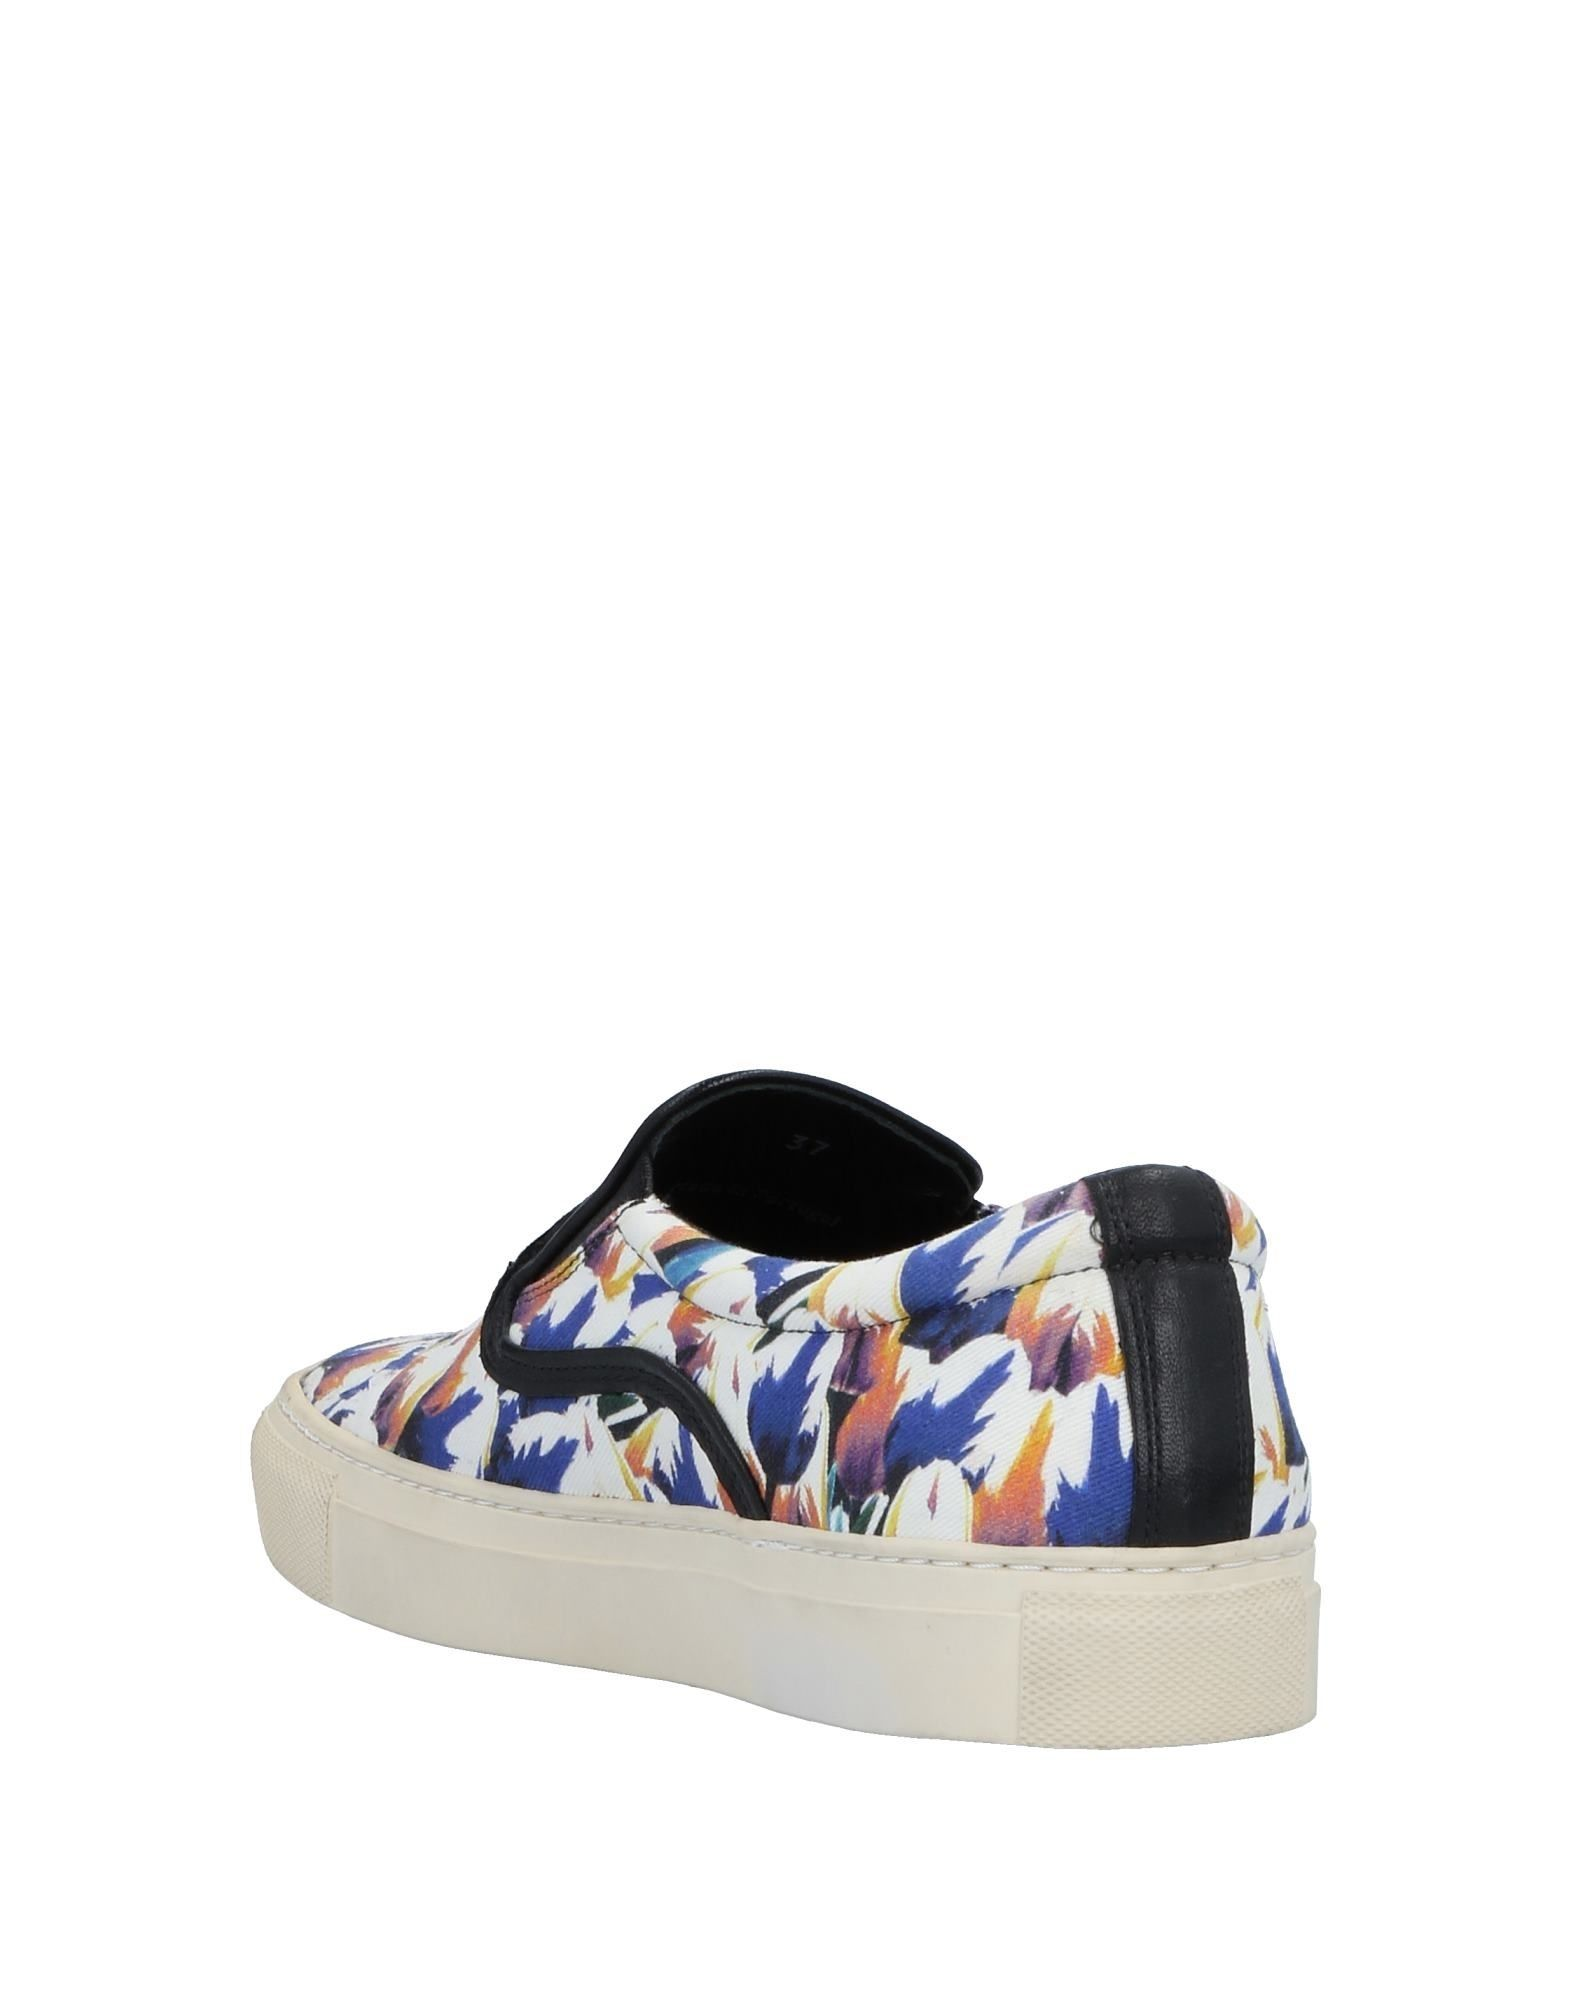 Mother Of Pearl Blue and Purple Sneakers